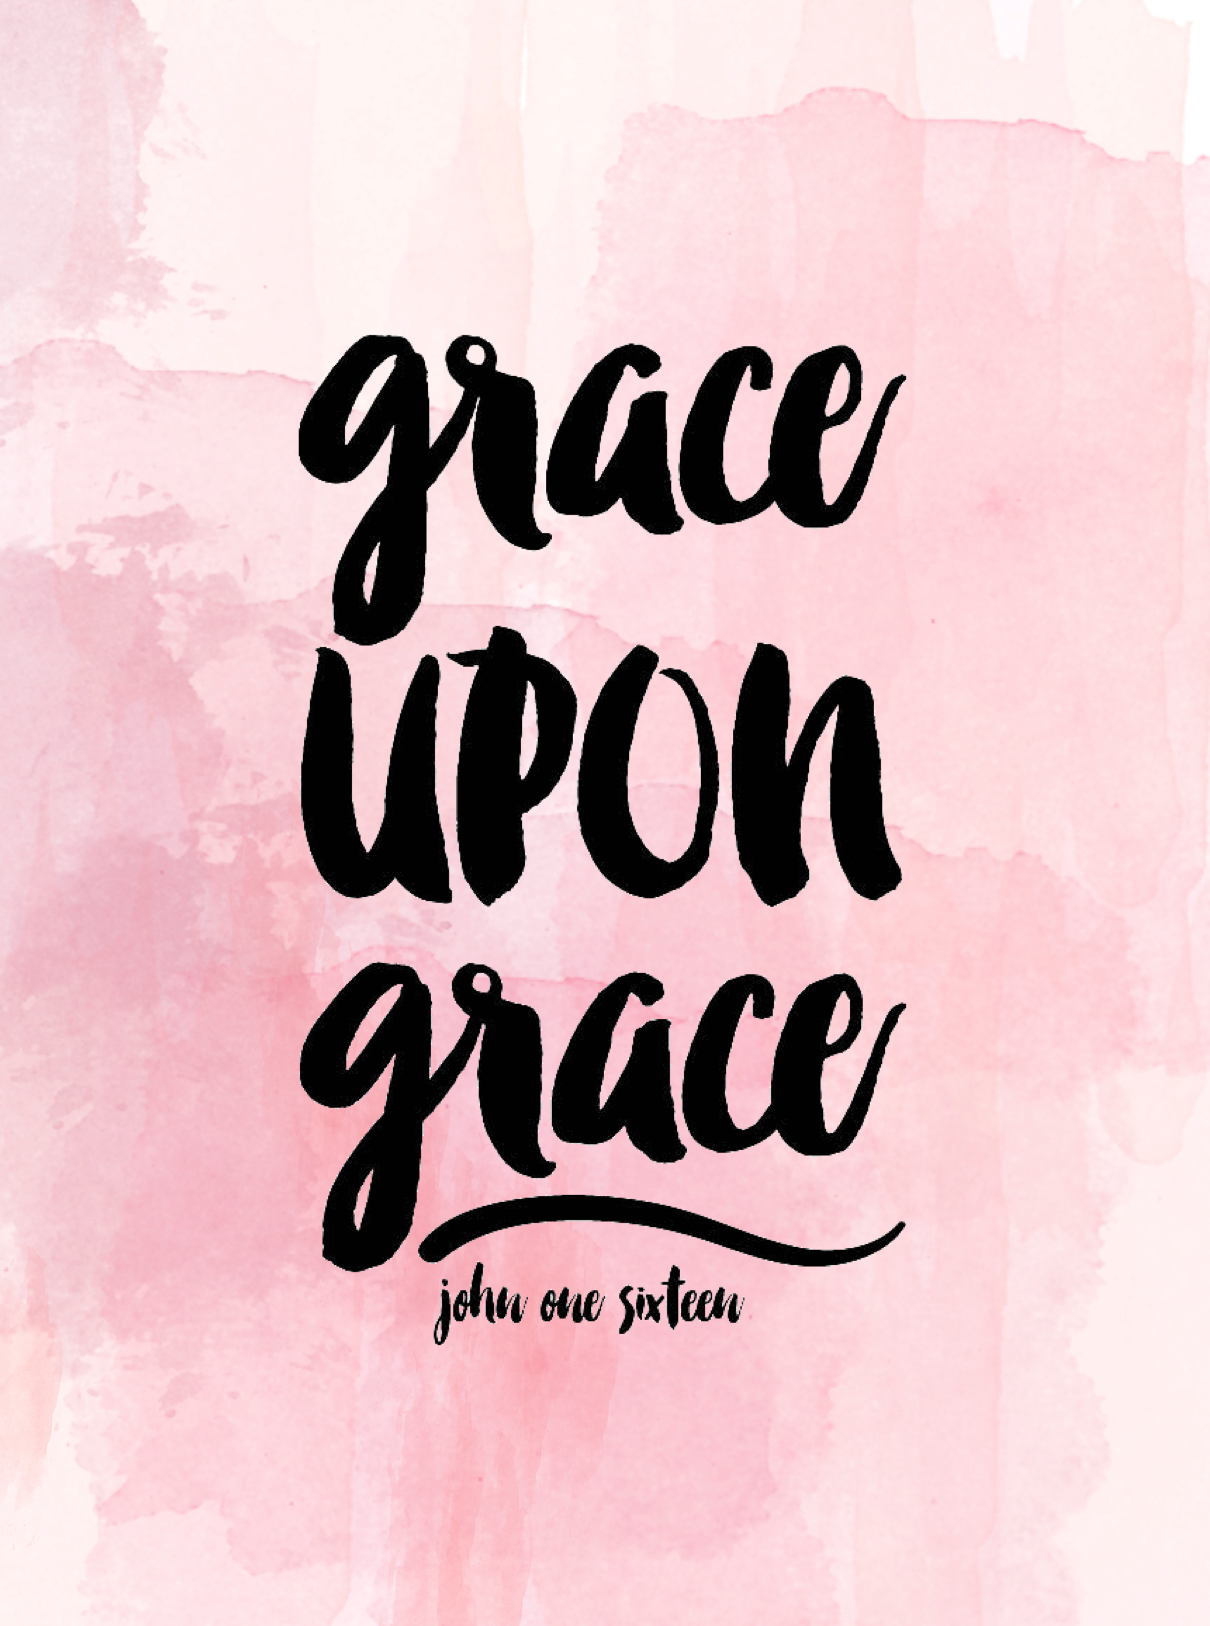 grace upon grace John 1:16 wallpaper | christian wallpaper, bible verse wallpaper, iPhone ...